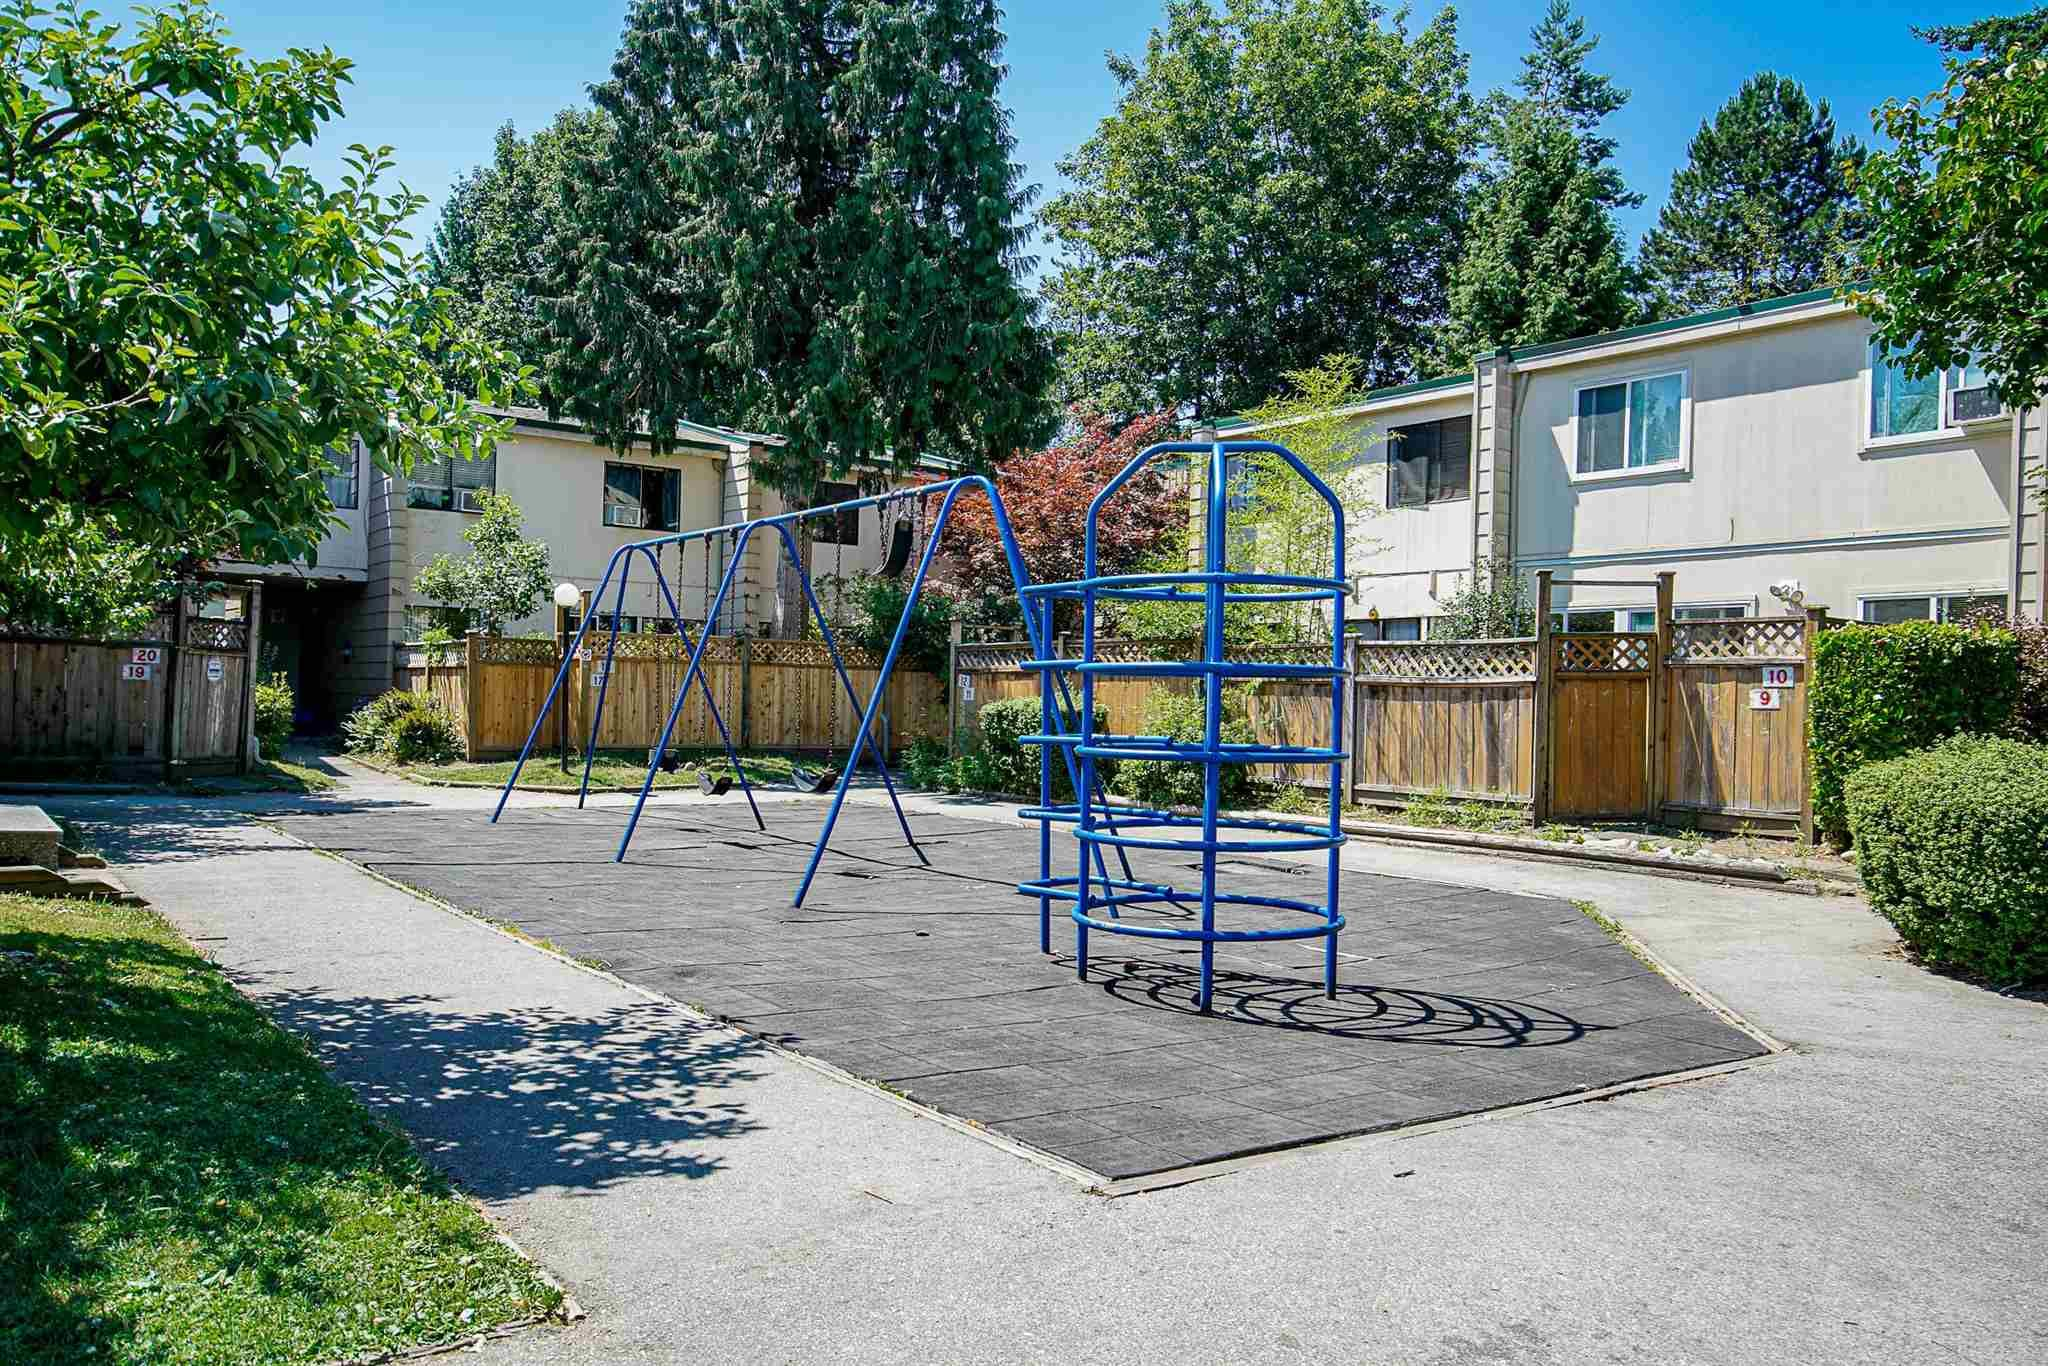 """Main Photo: 15 10585 153 Street in Surrey: Guildford Townhouse for sale in """"GUILDFORD MEWS"""" (North Surrey)  : MLS®# R2599405"""